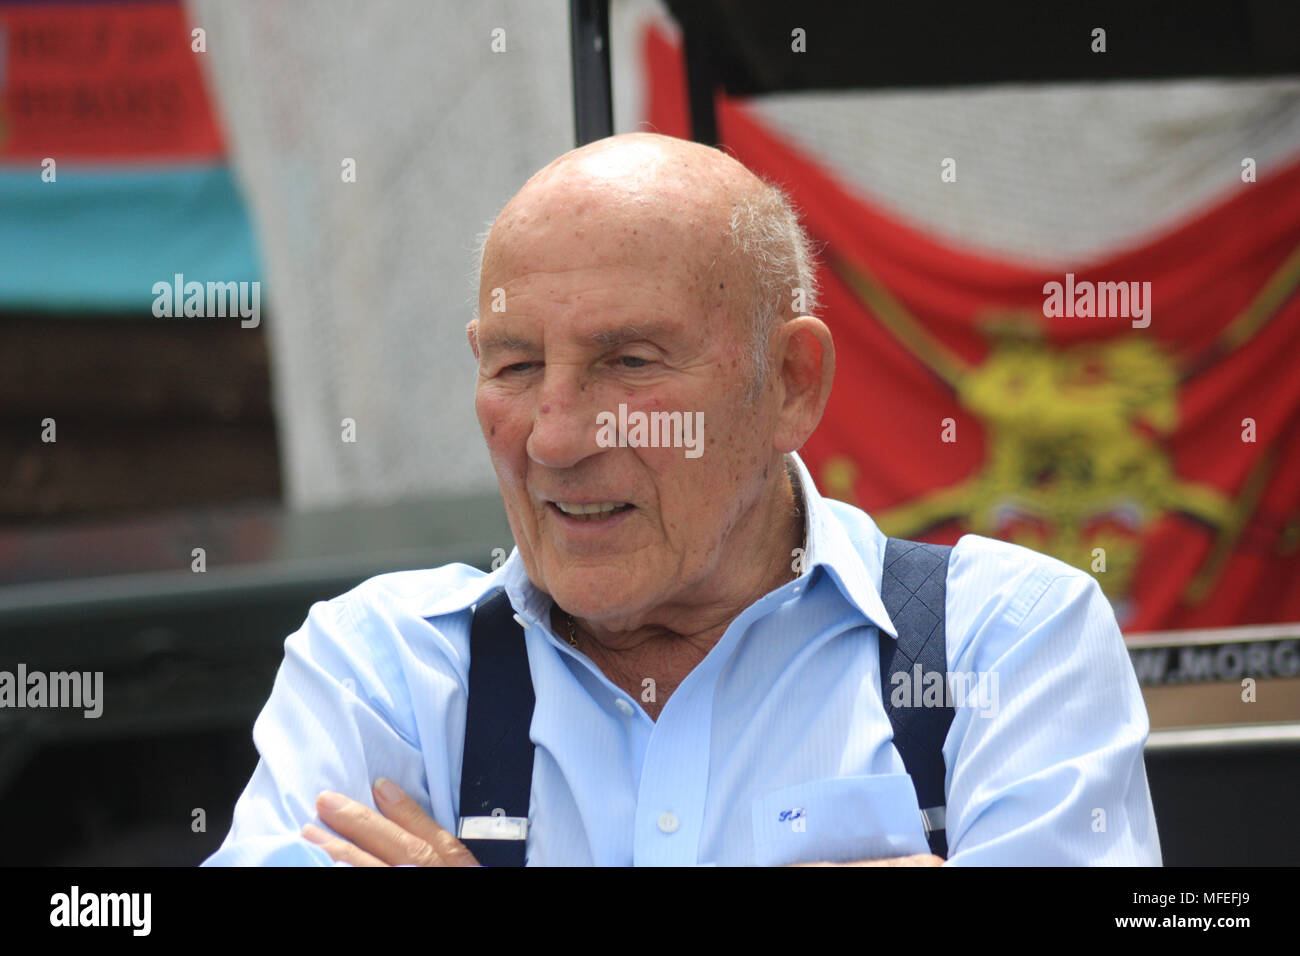 Sir Stirling Moss OBE - Stock Image